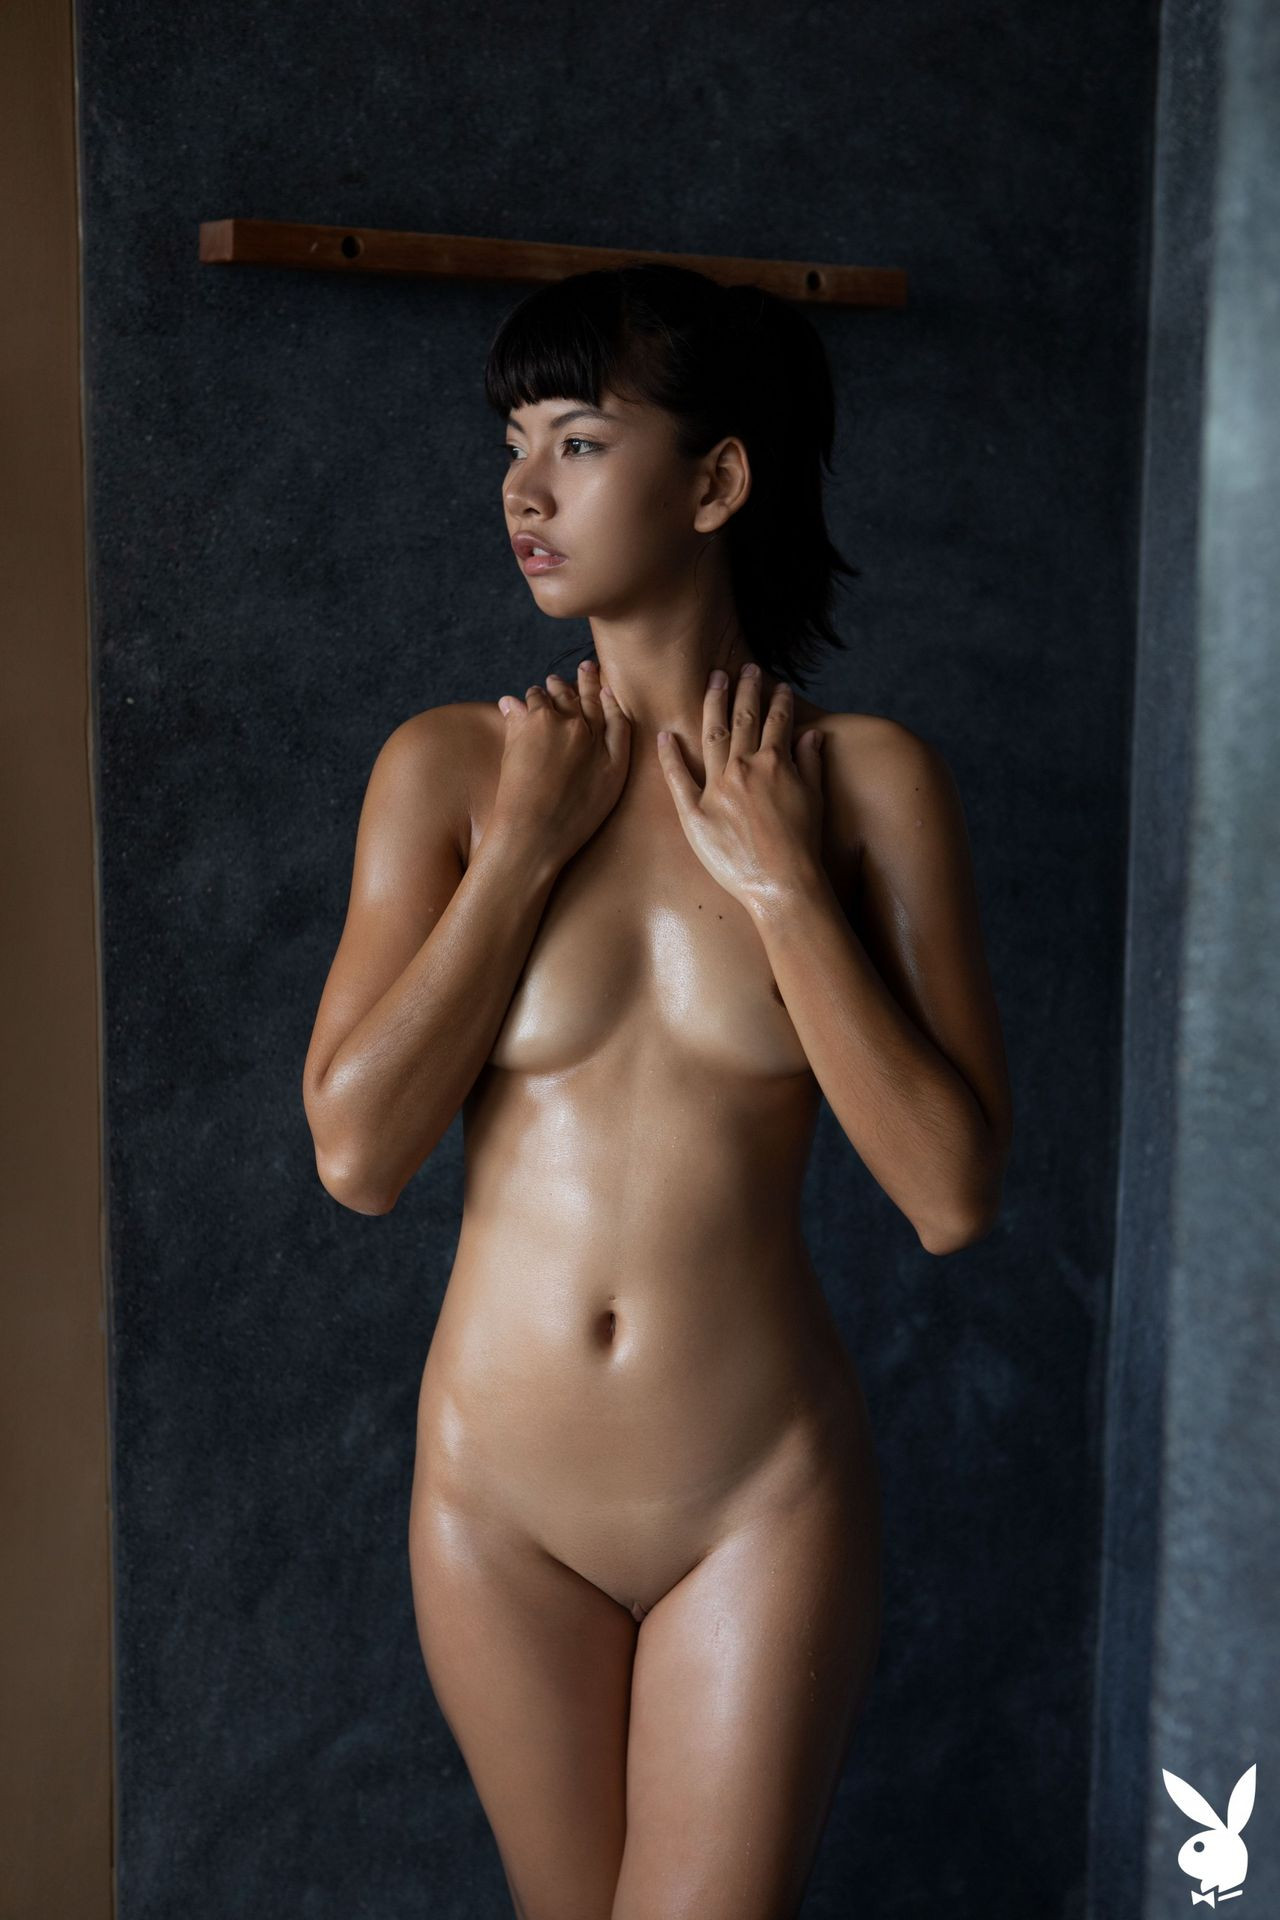 Cara Pin Nude Soft Shower thefappening.nu 1